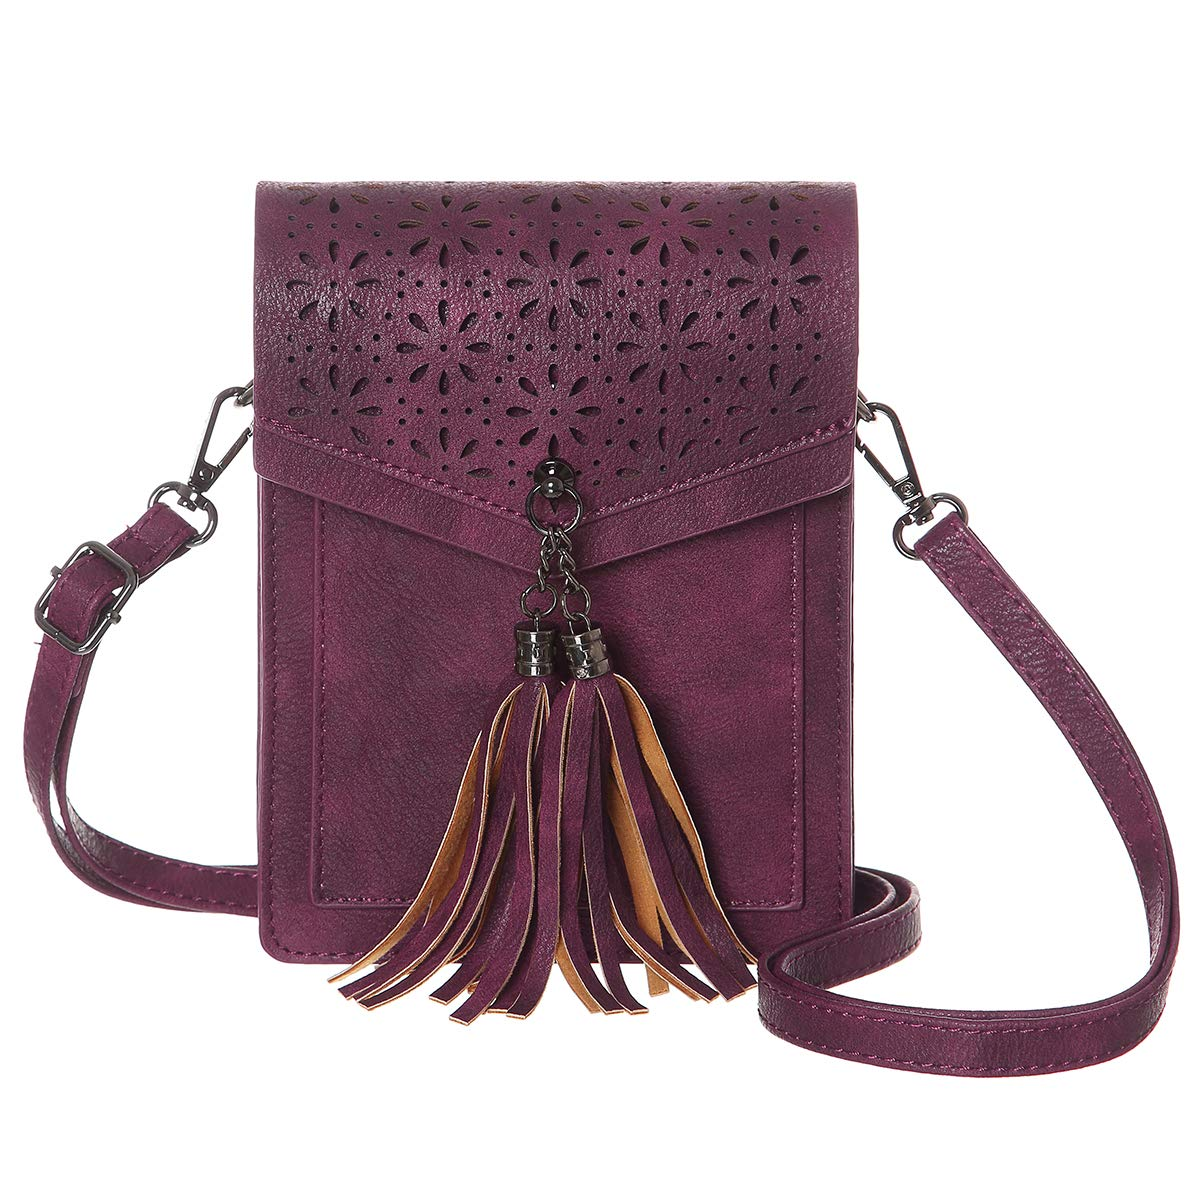 MINICAT Fringe Thicher Pocket Cell Phone Purse Wallet Small Crossbody Bags For Women With Credit Card Slots(Burgundy)